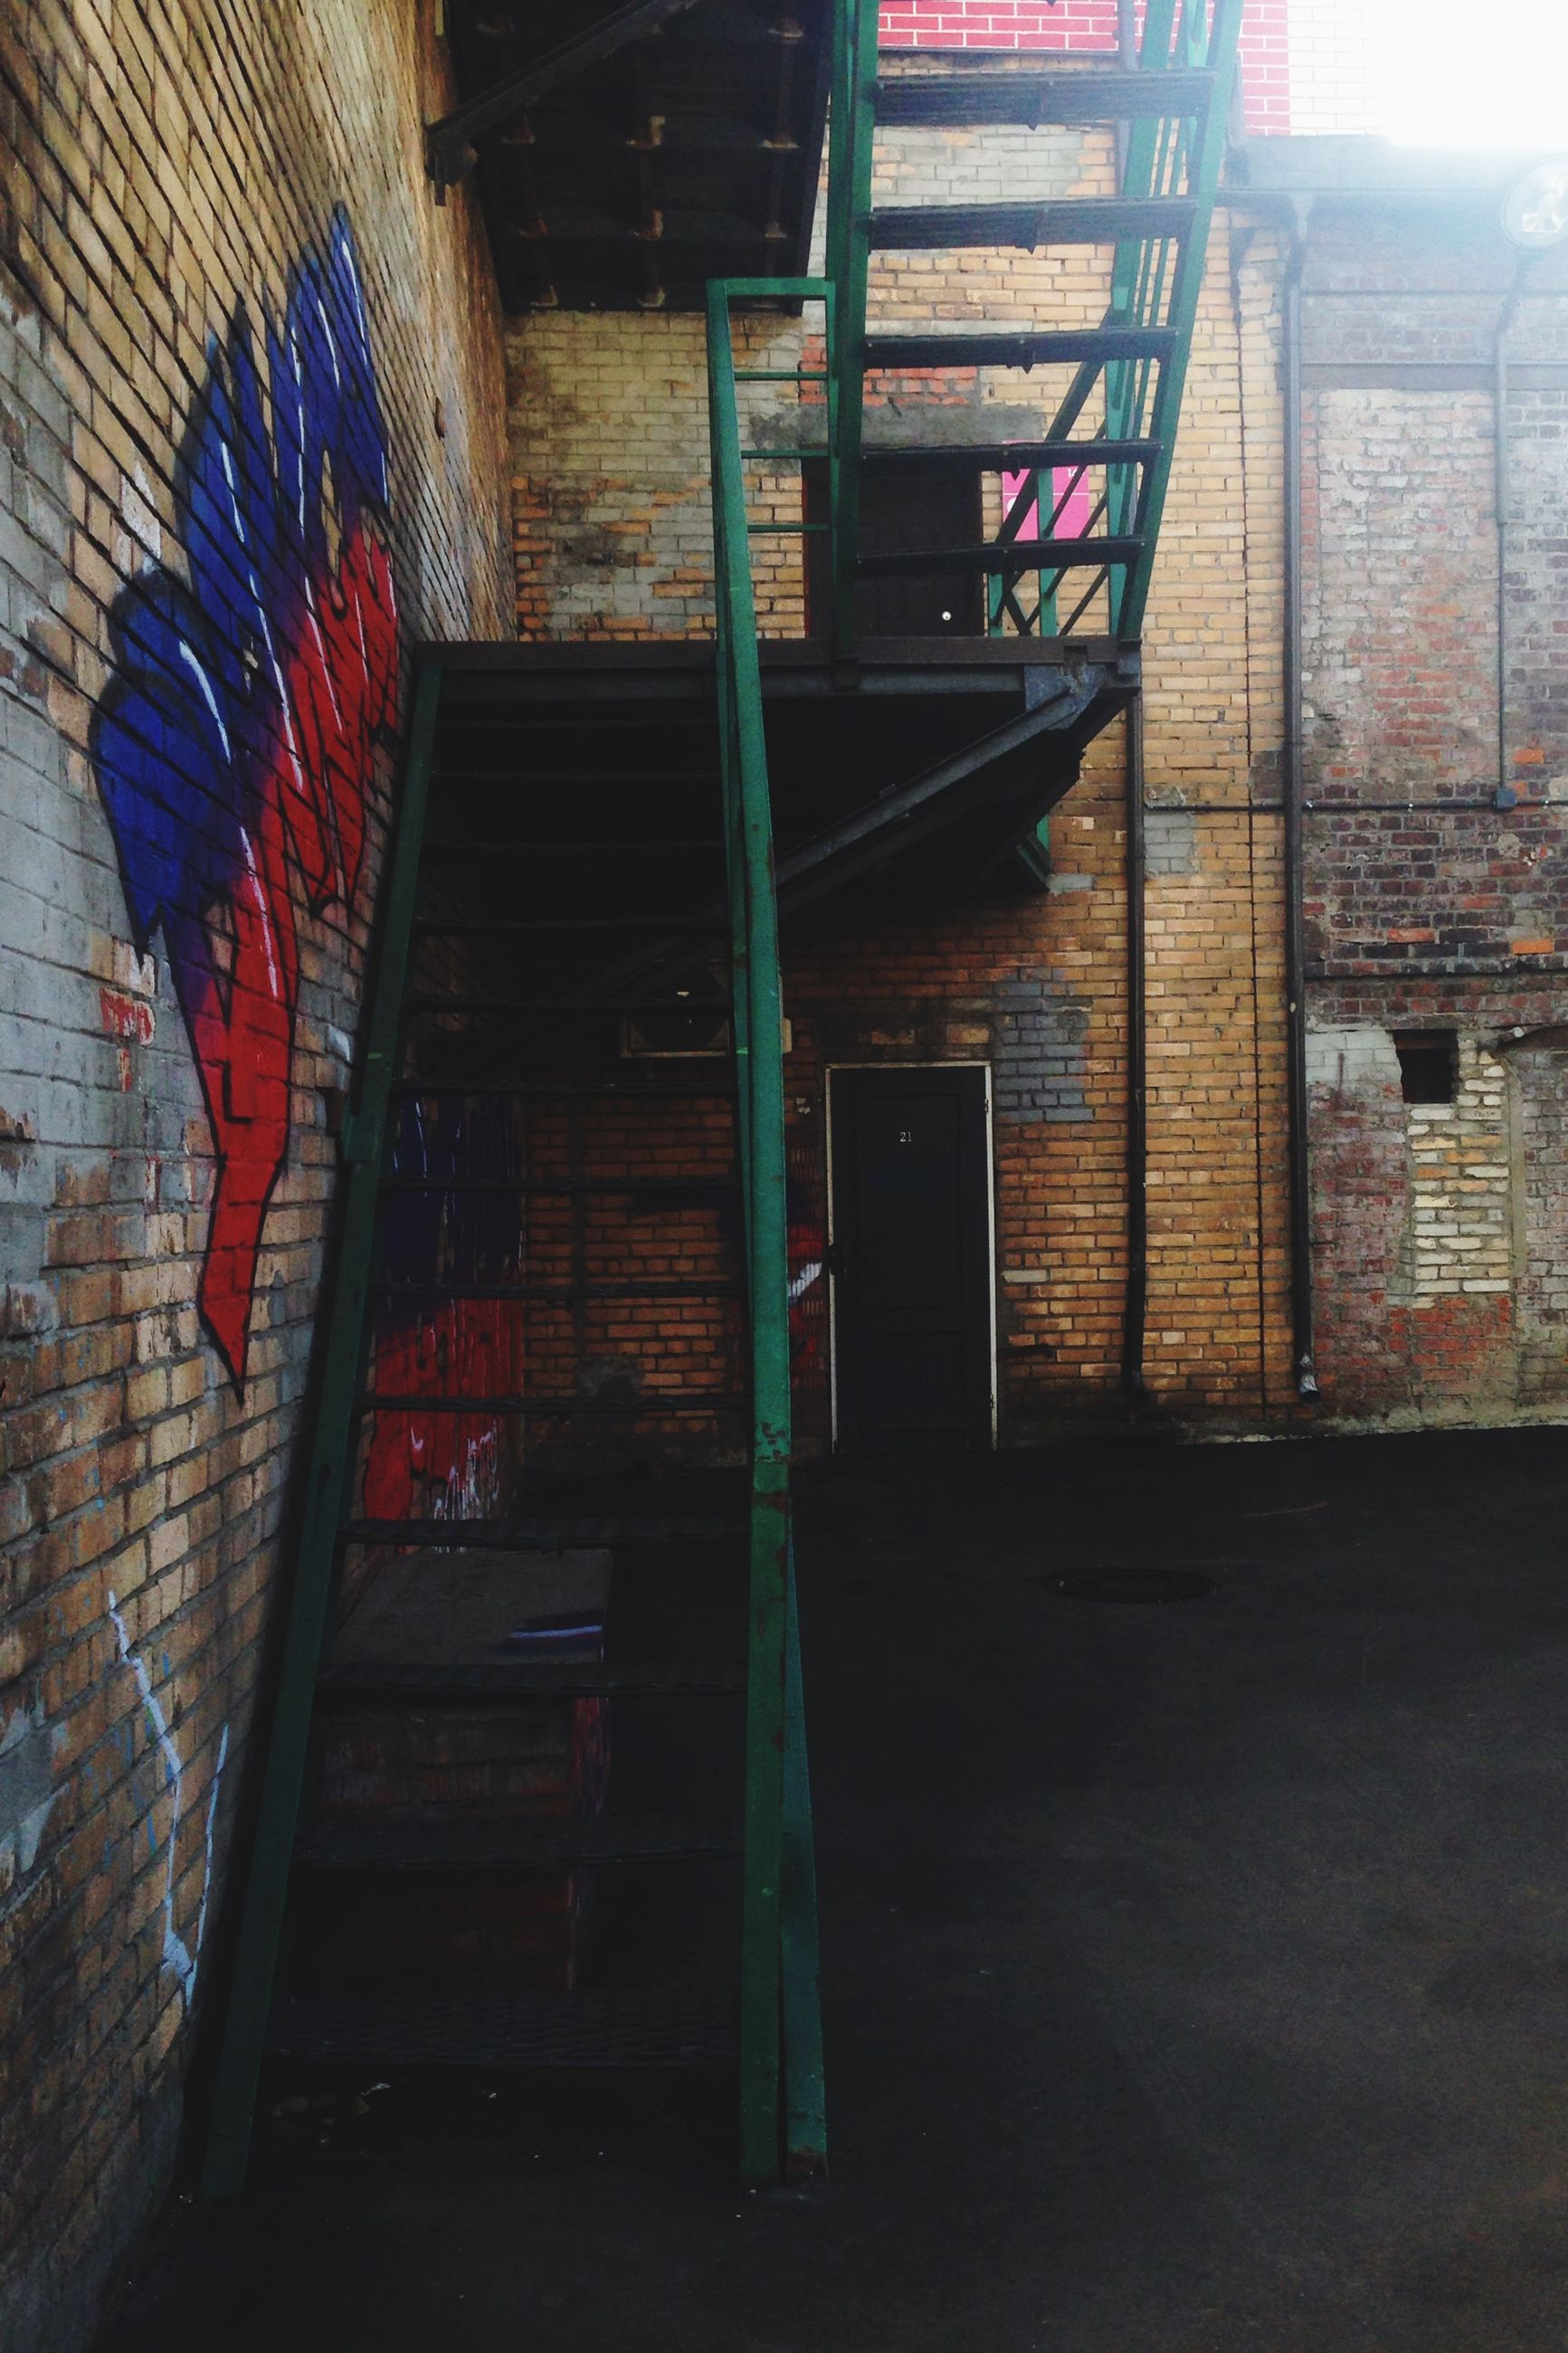 architecture, built structure, building exterior, door, house, brick wall, steps, wall - building feature, building, closed, window, graffiti, indoors, entrance, staircase, steps and staircases, abandoned, residential structure, wood - material, wall